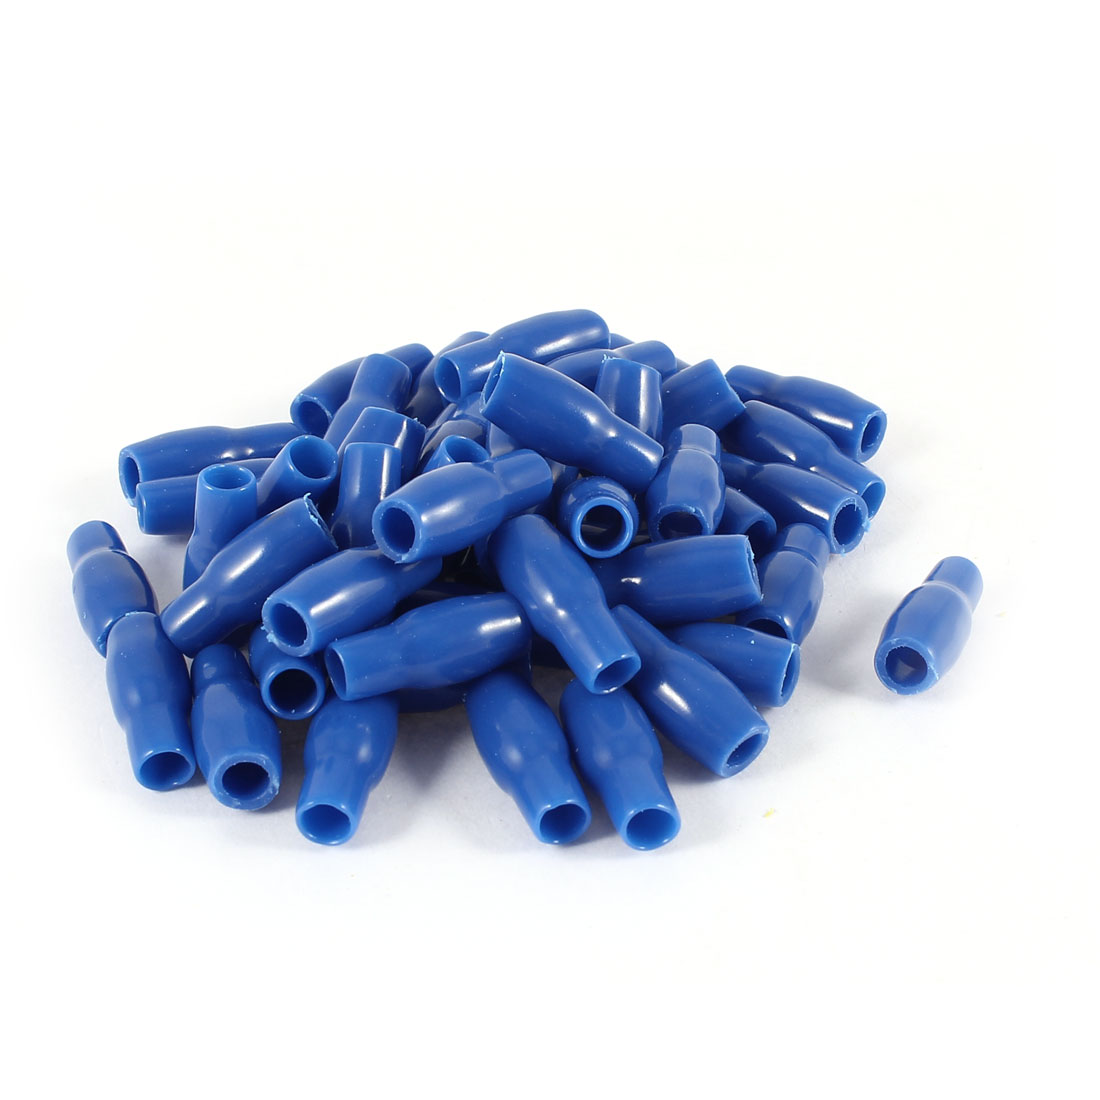 50 Pcs Blue Soft PVC Wire V-3.5 4mm2 Crimp Terminal End Insulated Sleeves Caps Cover